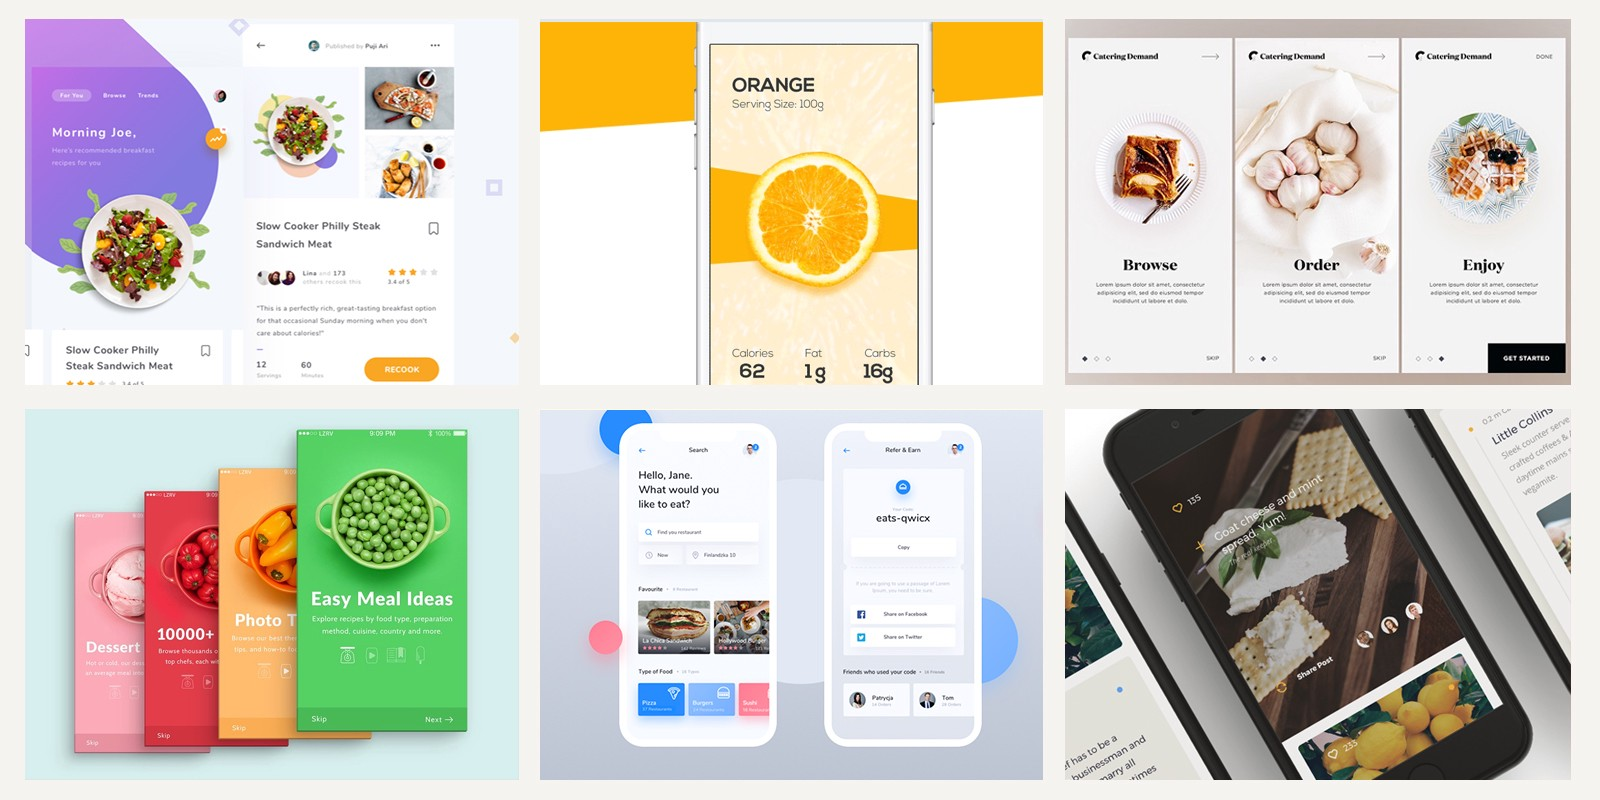 20 fresh food mobile app designs for your inspiration |